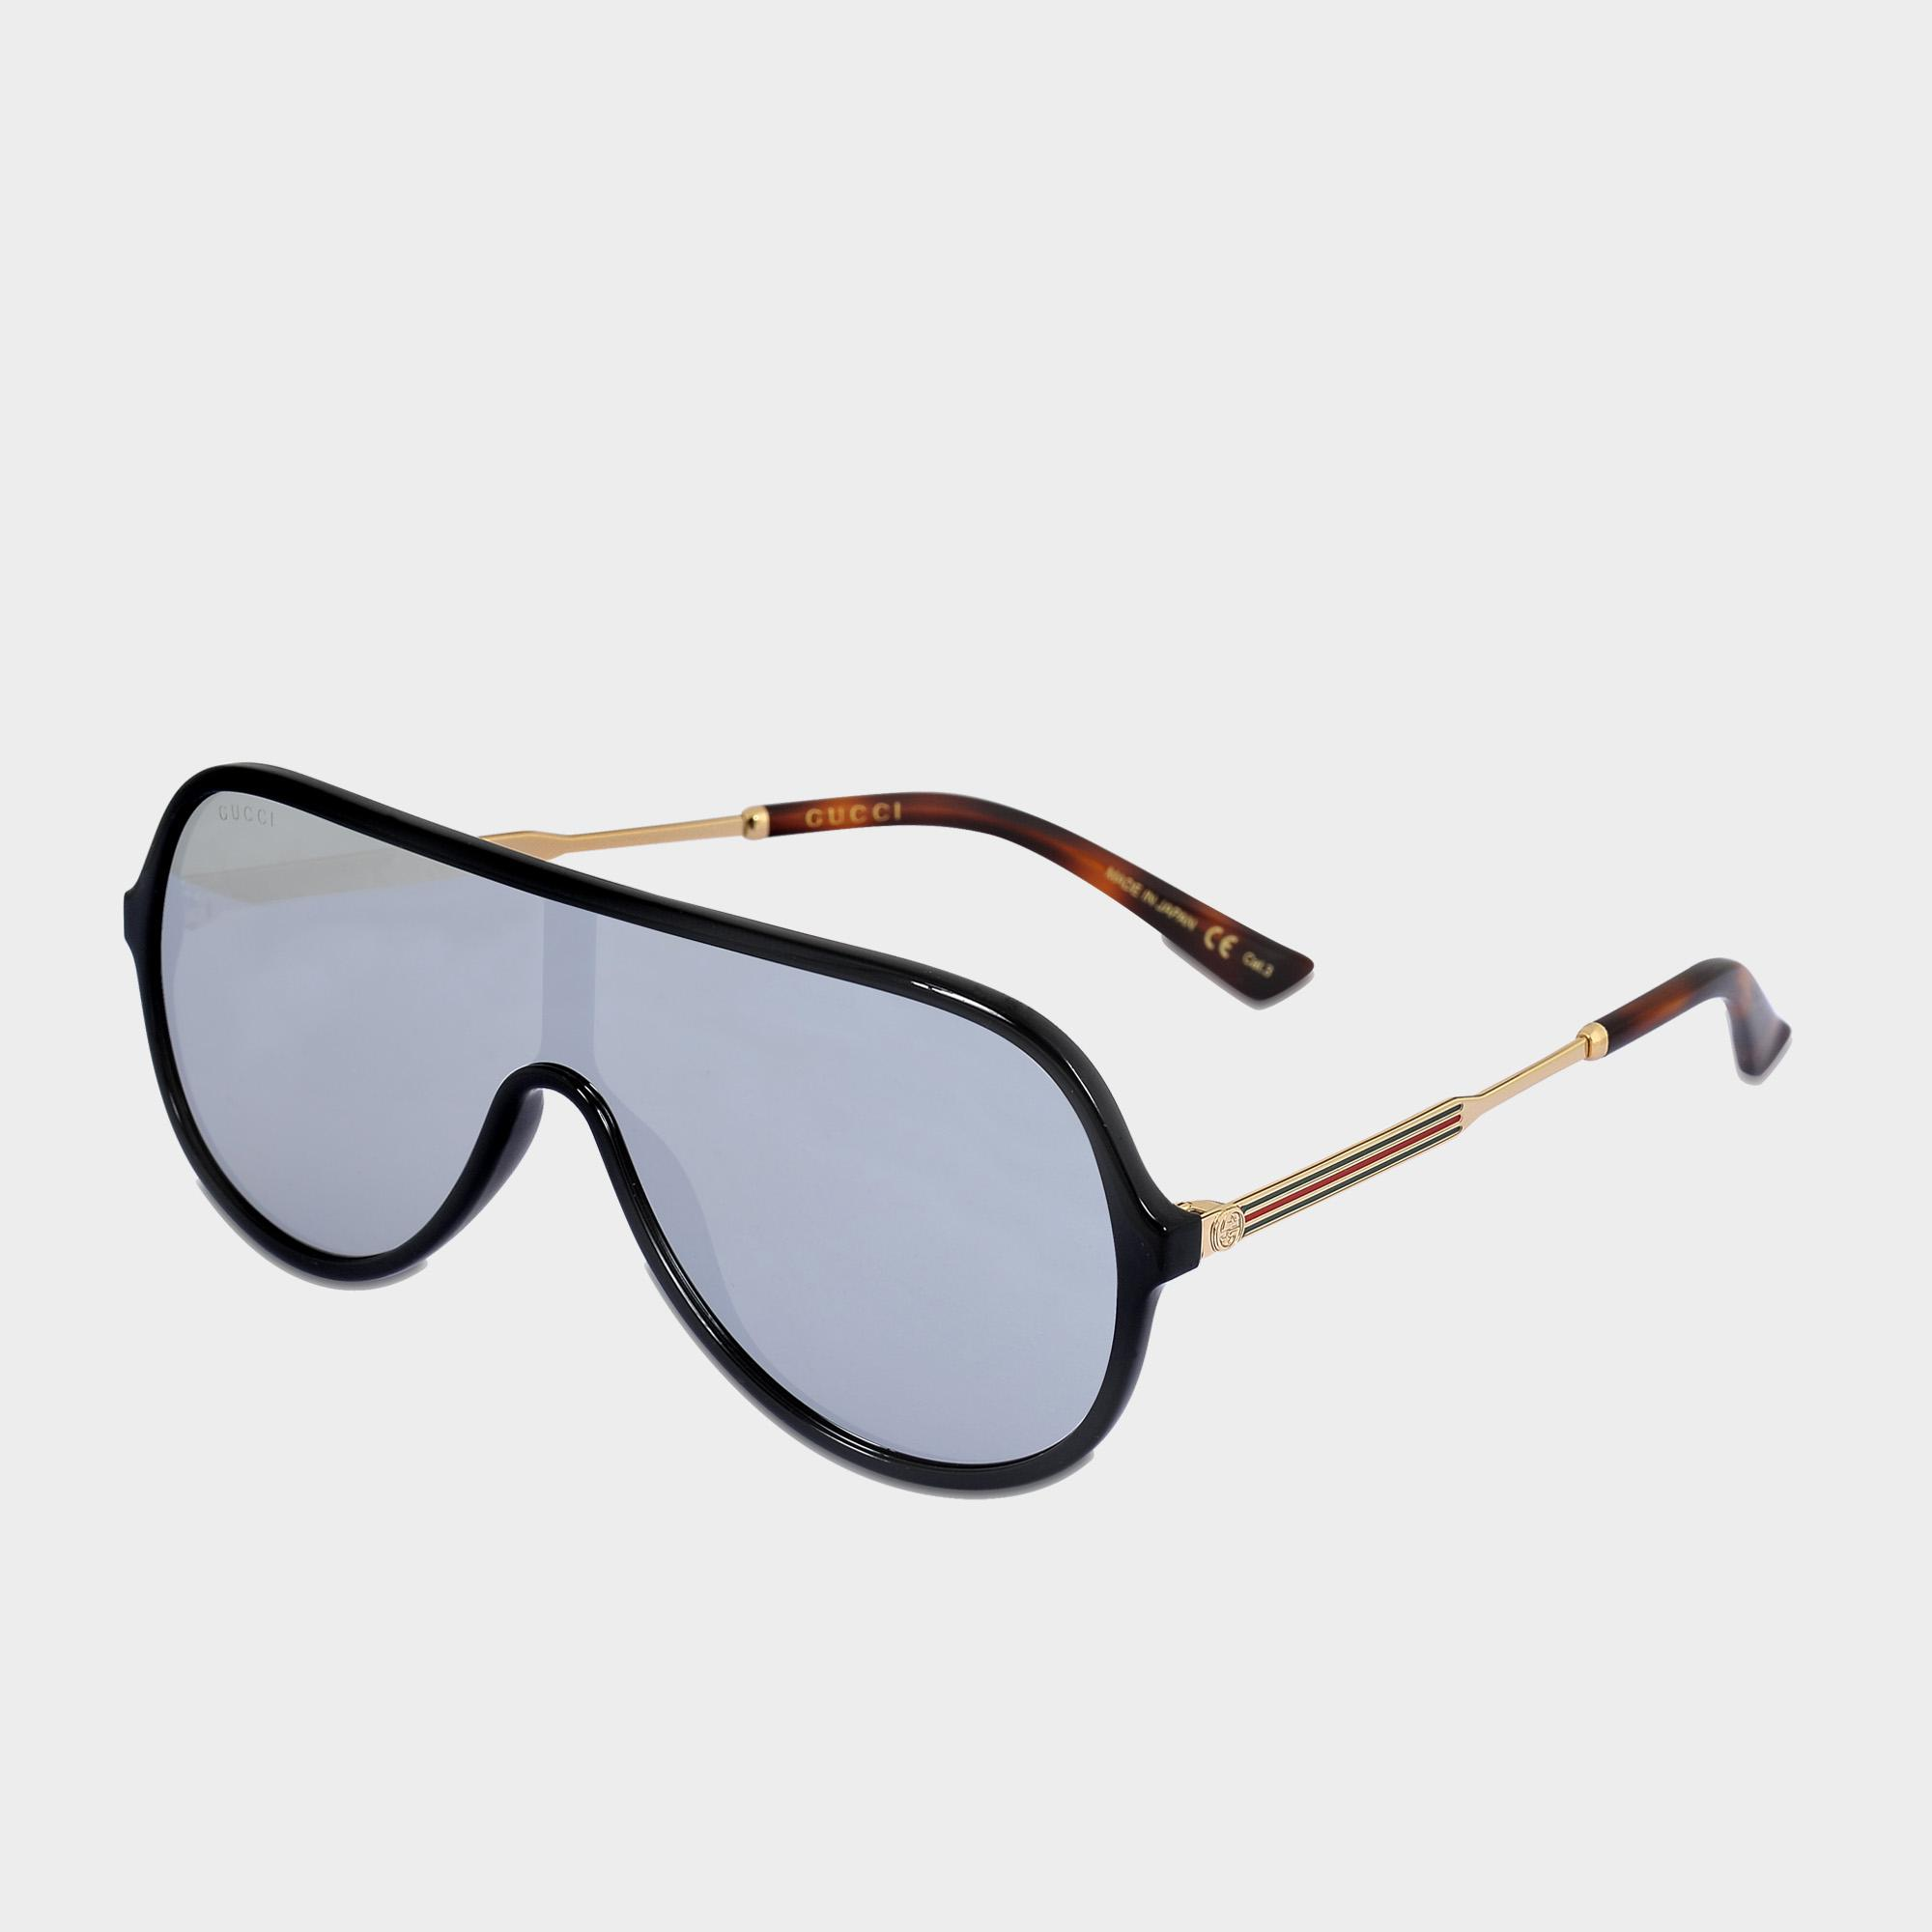 17da859392 Gucci Aviator Sunglasses In Shiny Endura Gold-havana Injection - Lyst